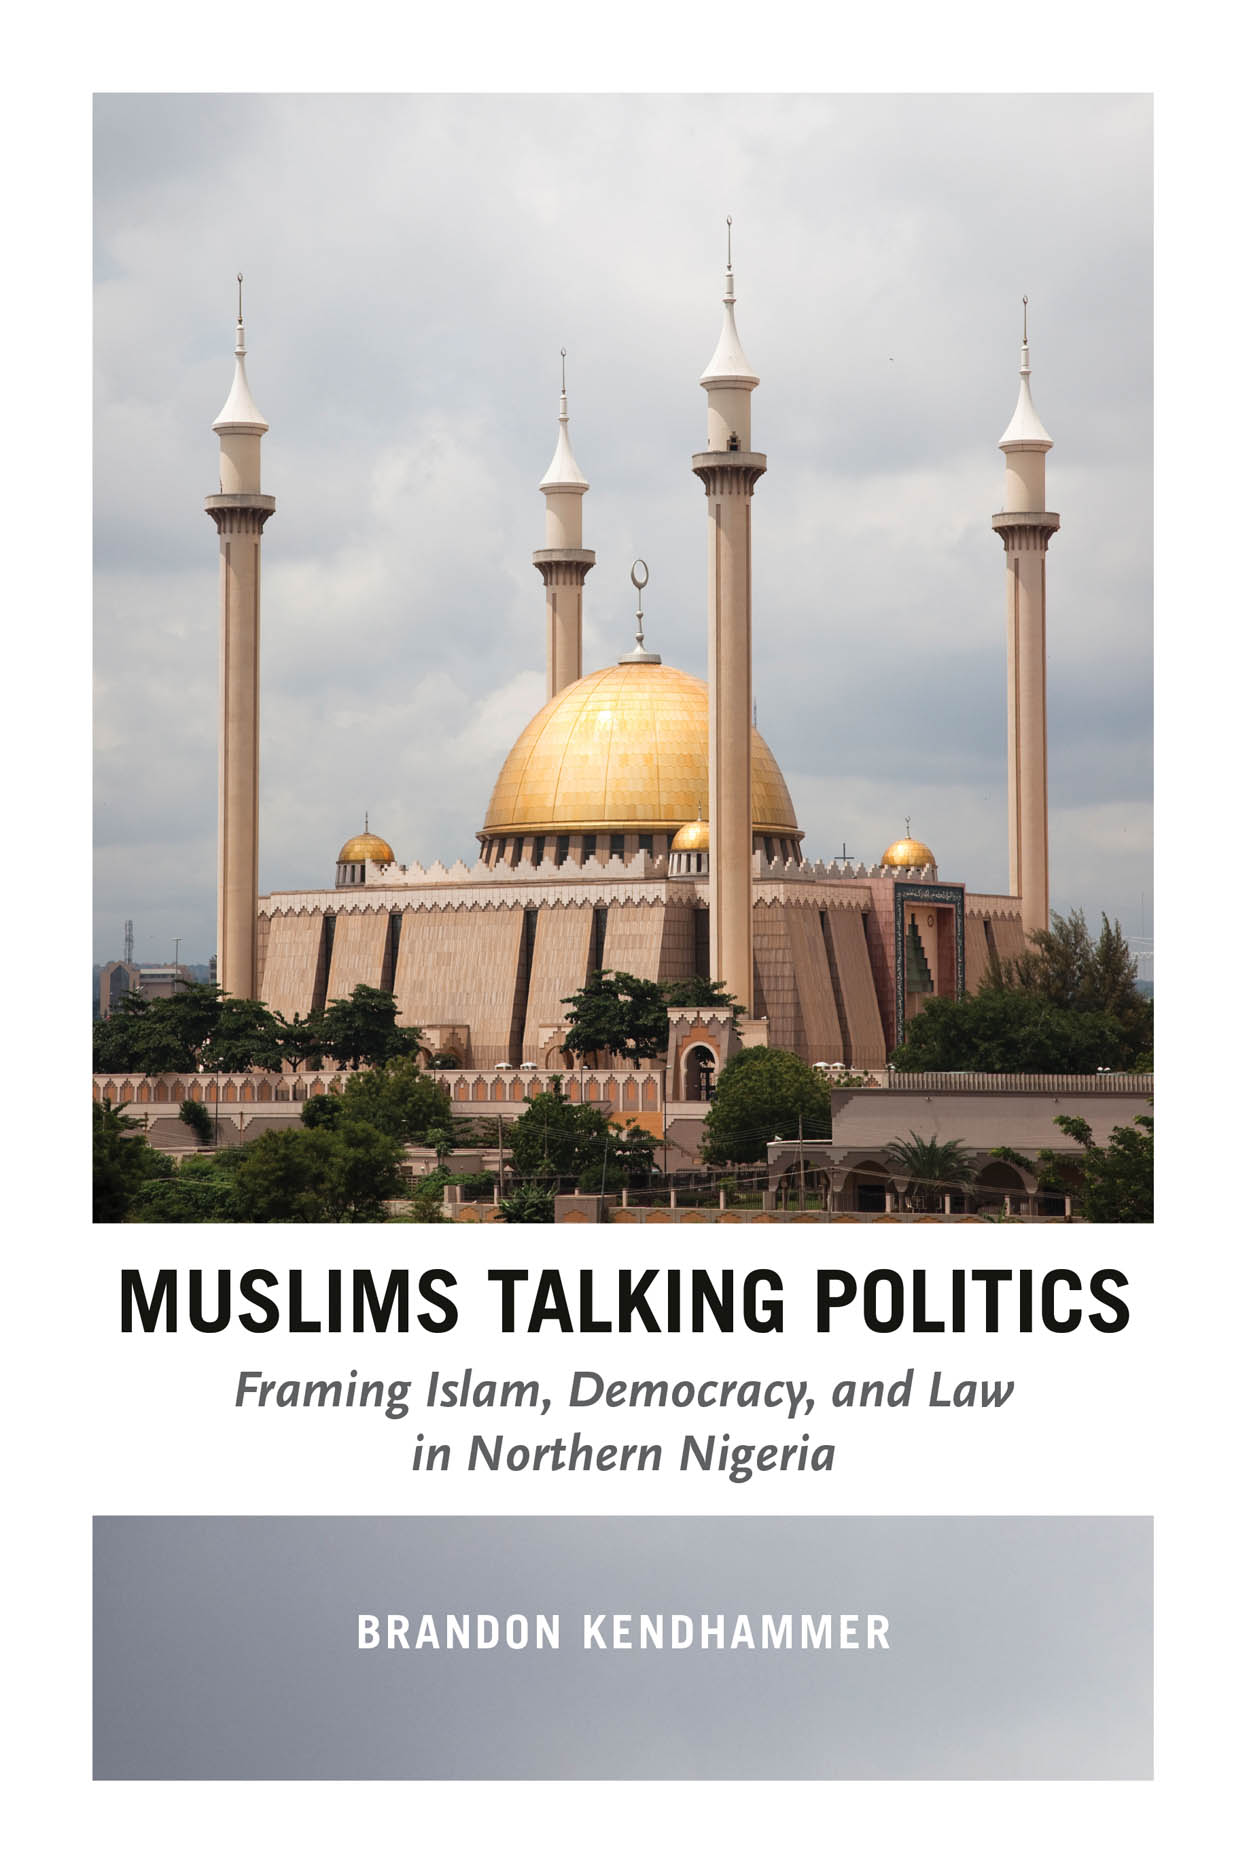 Muslims Talking Politics: Framing Islam, Democracy, and Law in Northern Nigeria